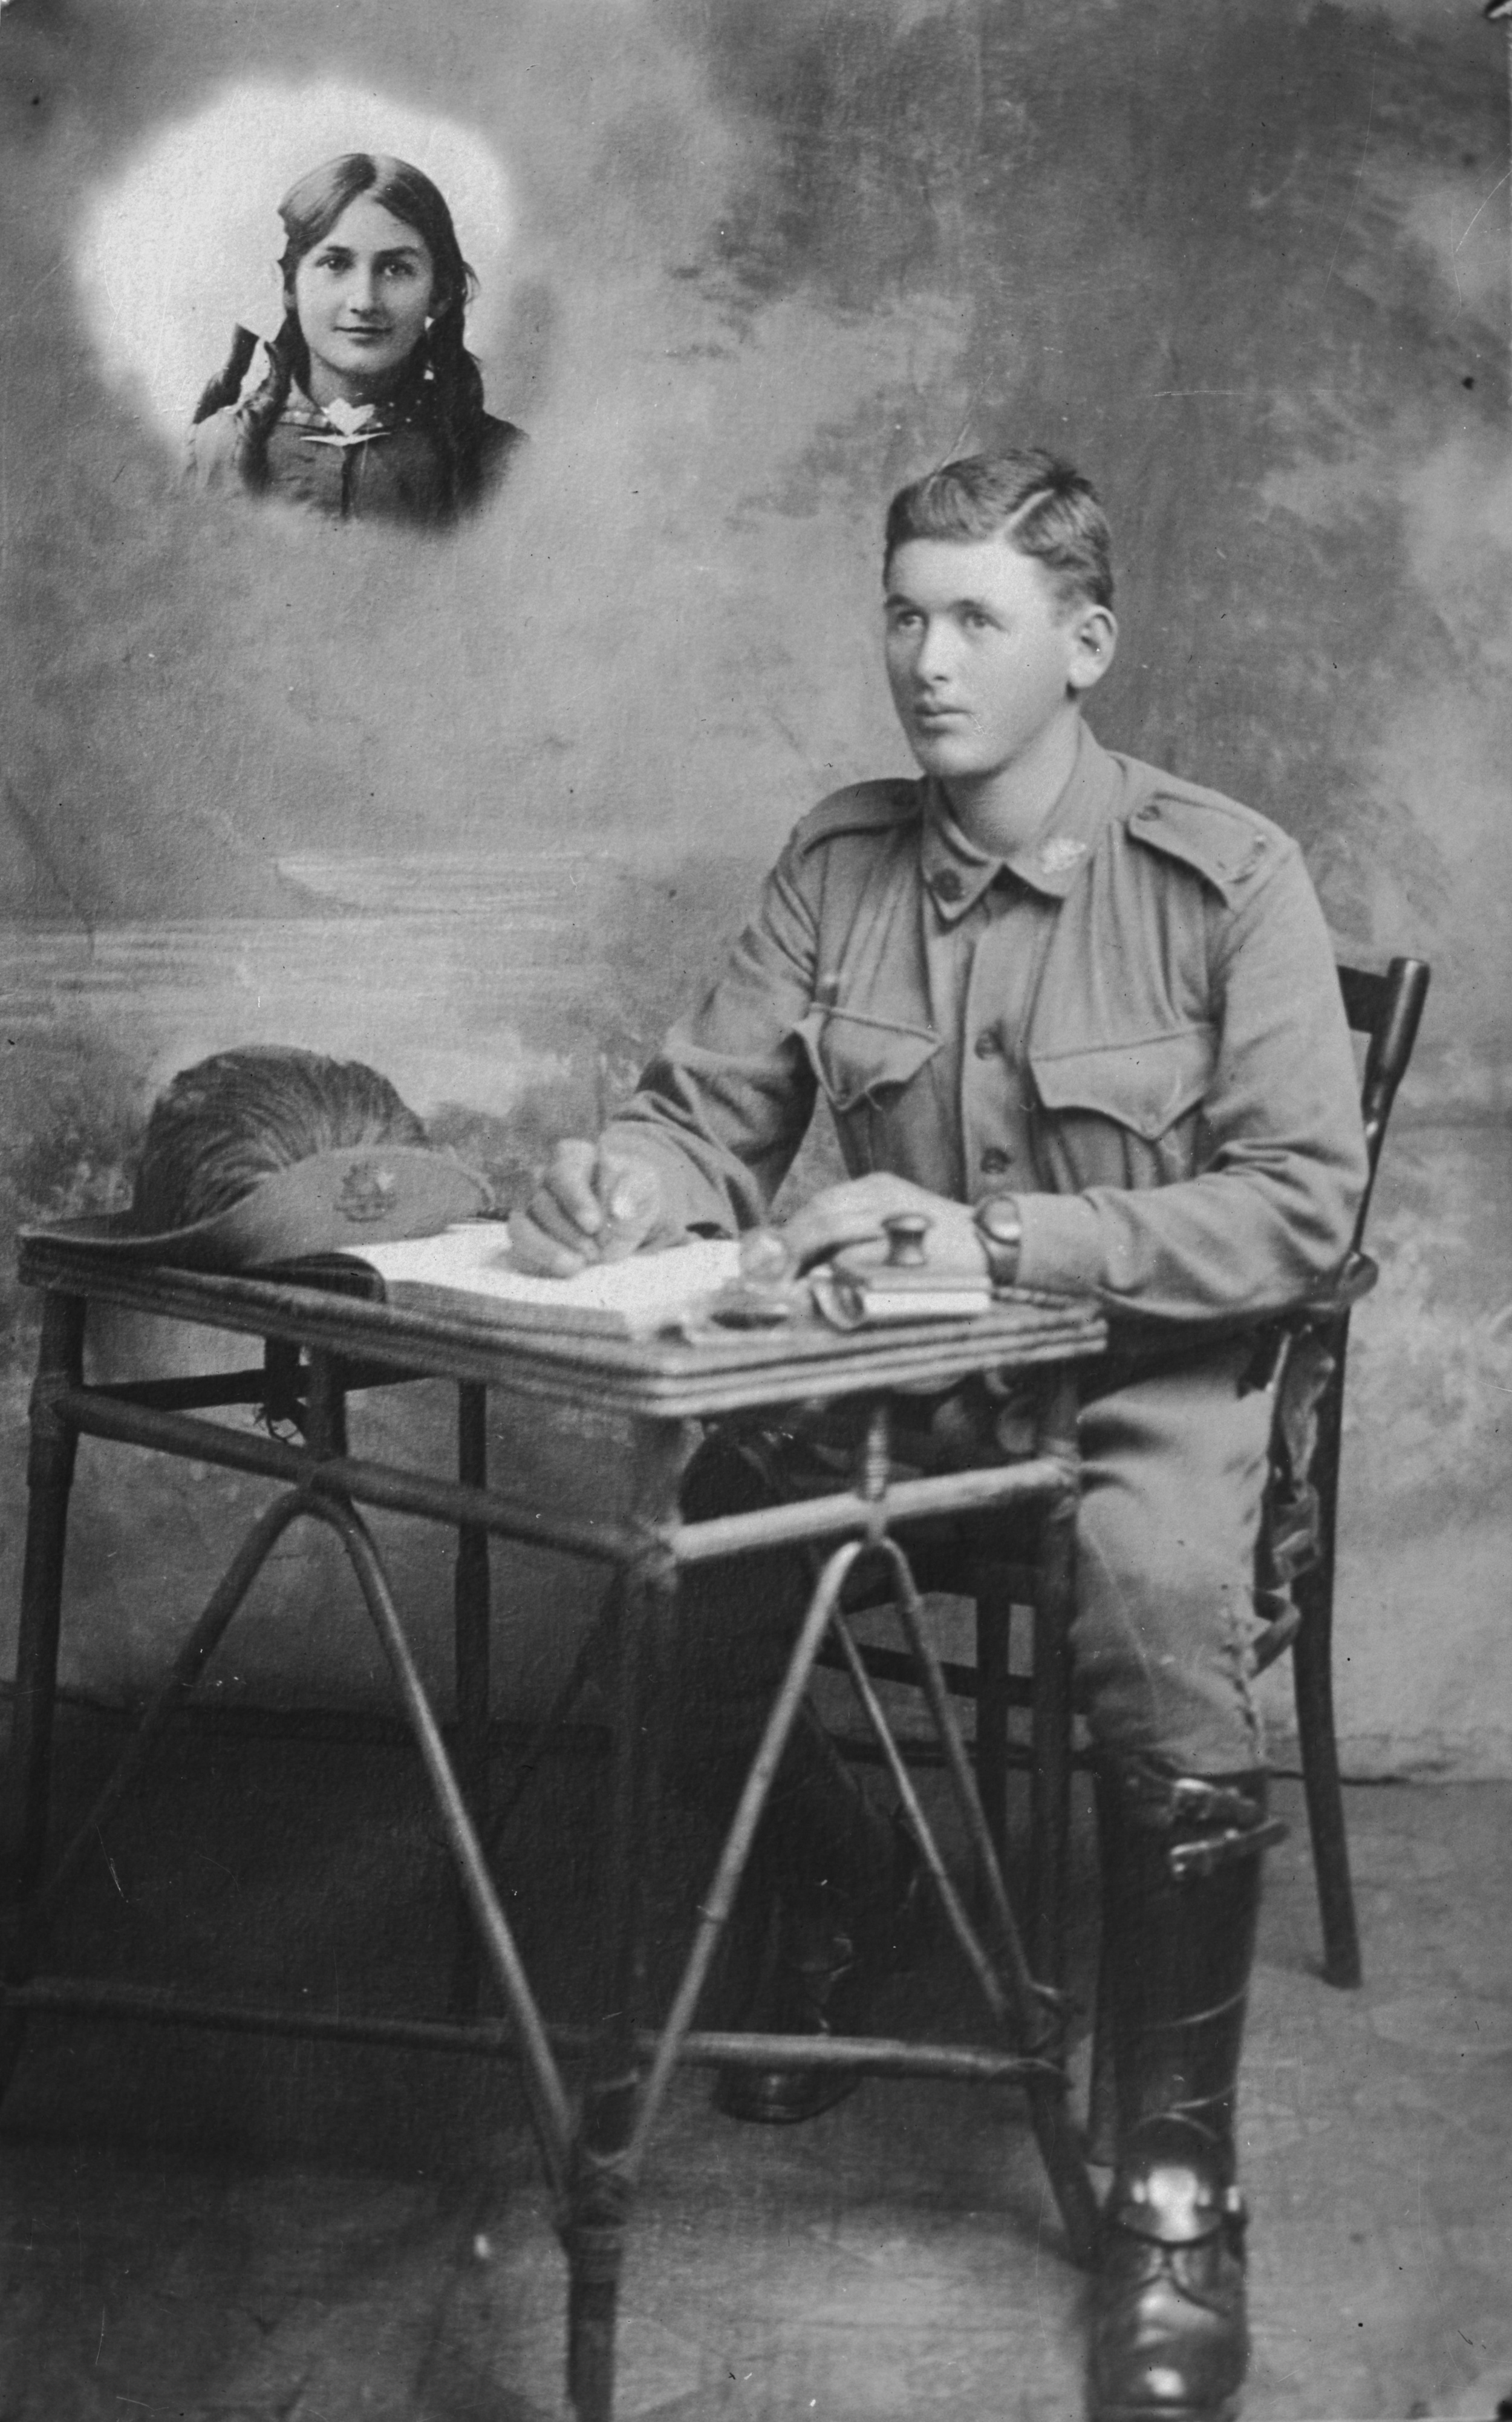 Photographed at the Dease Studio, 117 Barrack Street Perth WA Image courtesy of the State Library of Western Australia: 108050PD